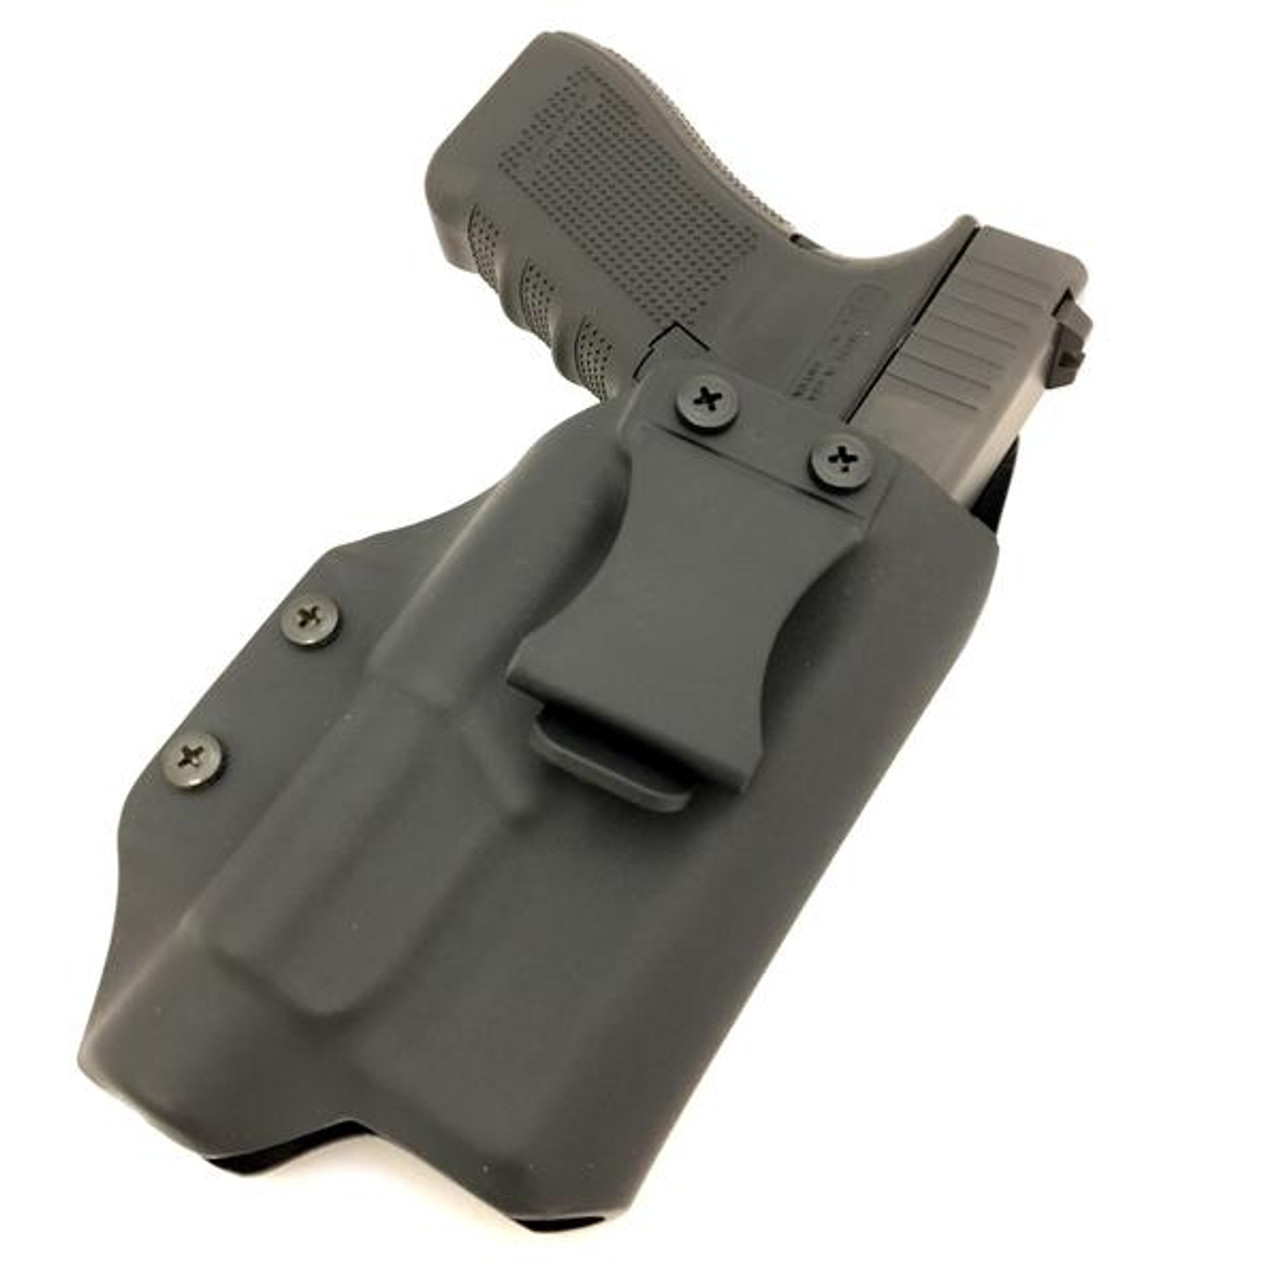 IWB-L Kydex Holster with Weapon Light